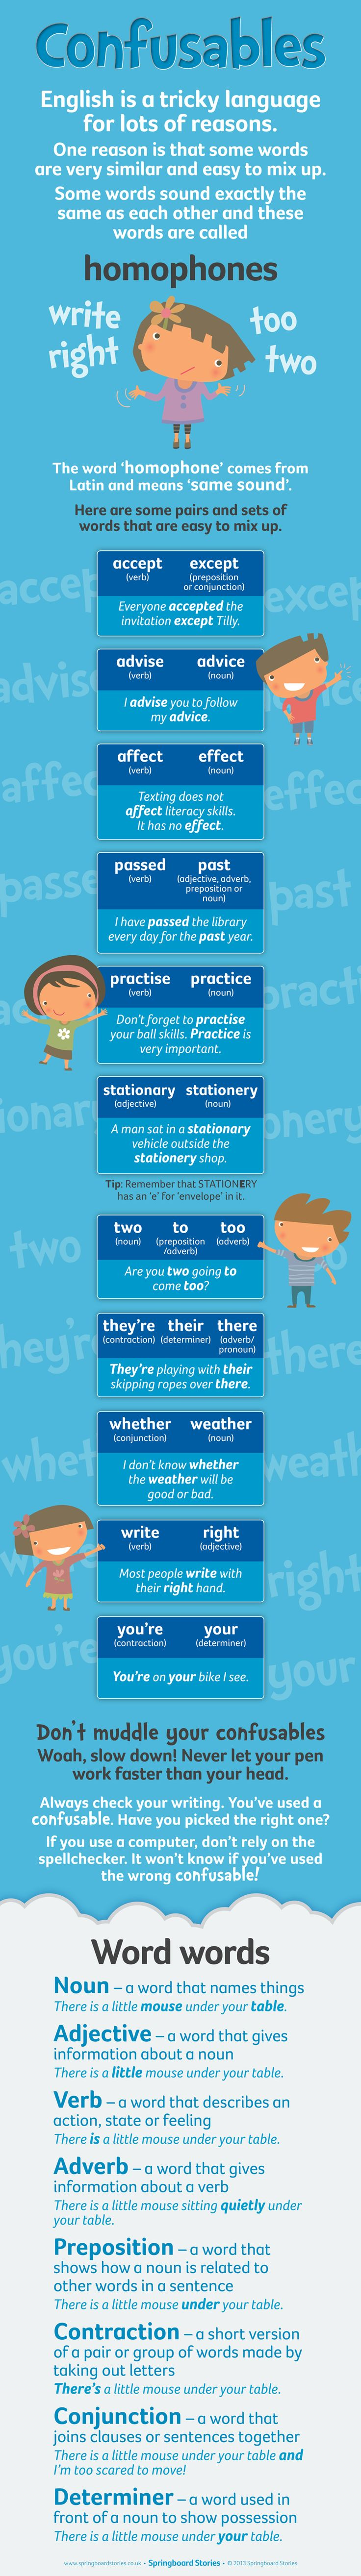 This infographic will help explain some of those tricky homophones...